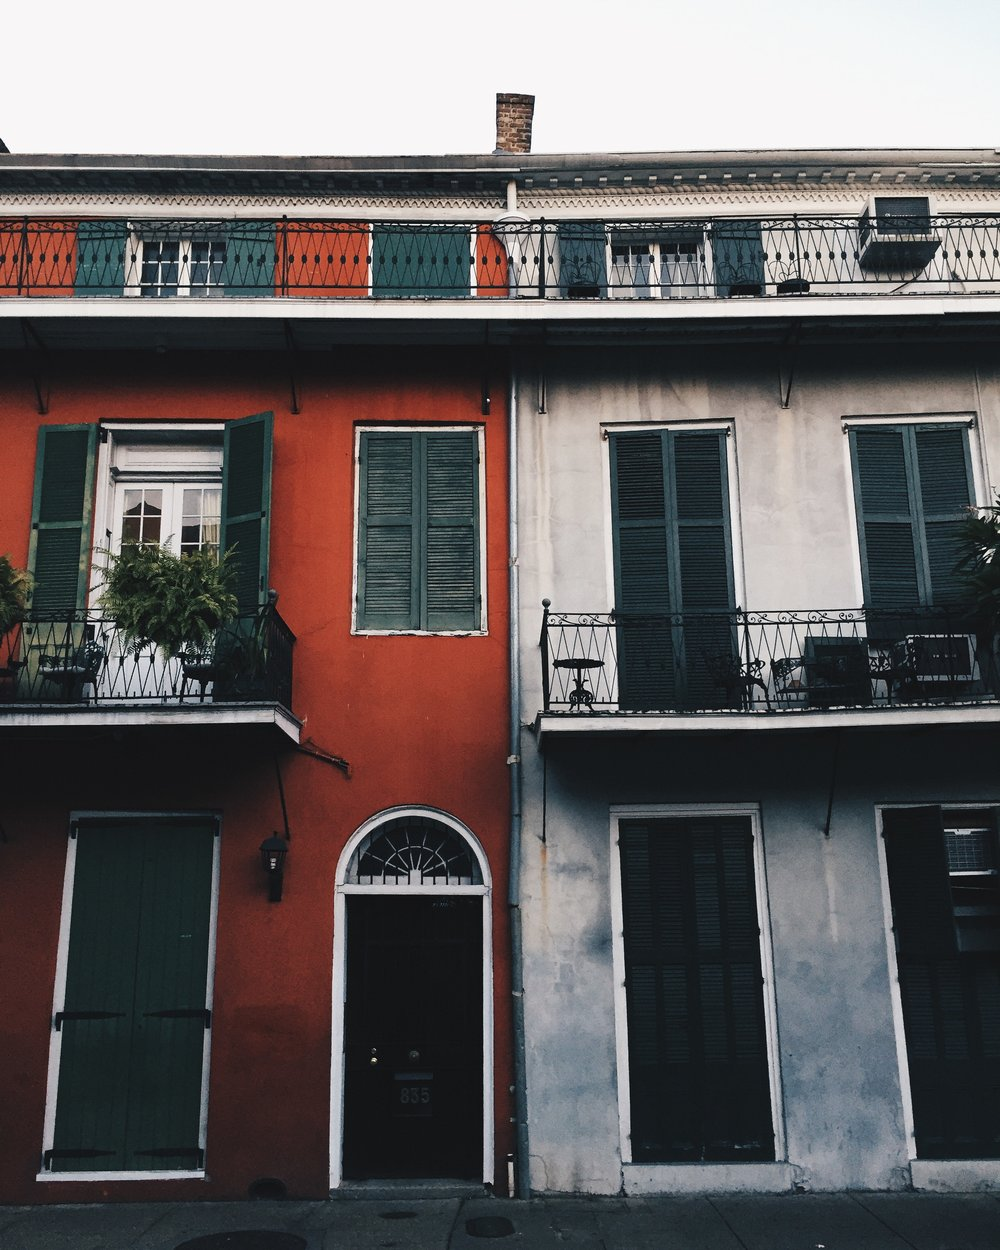 All the buildings are very colorful. Almost as colorful as San Francisco.